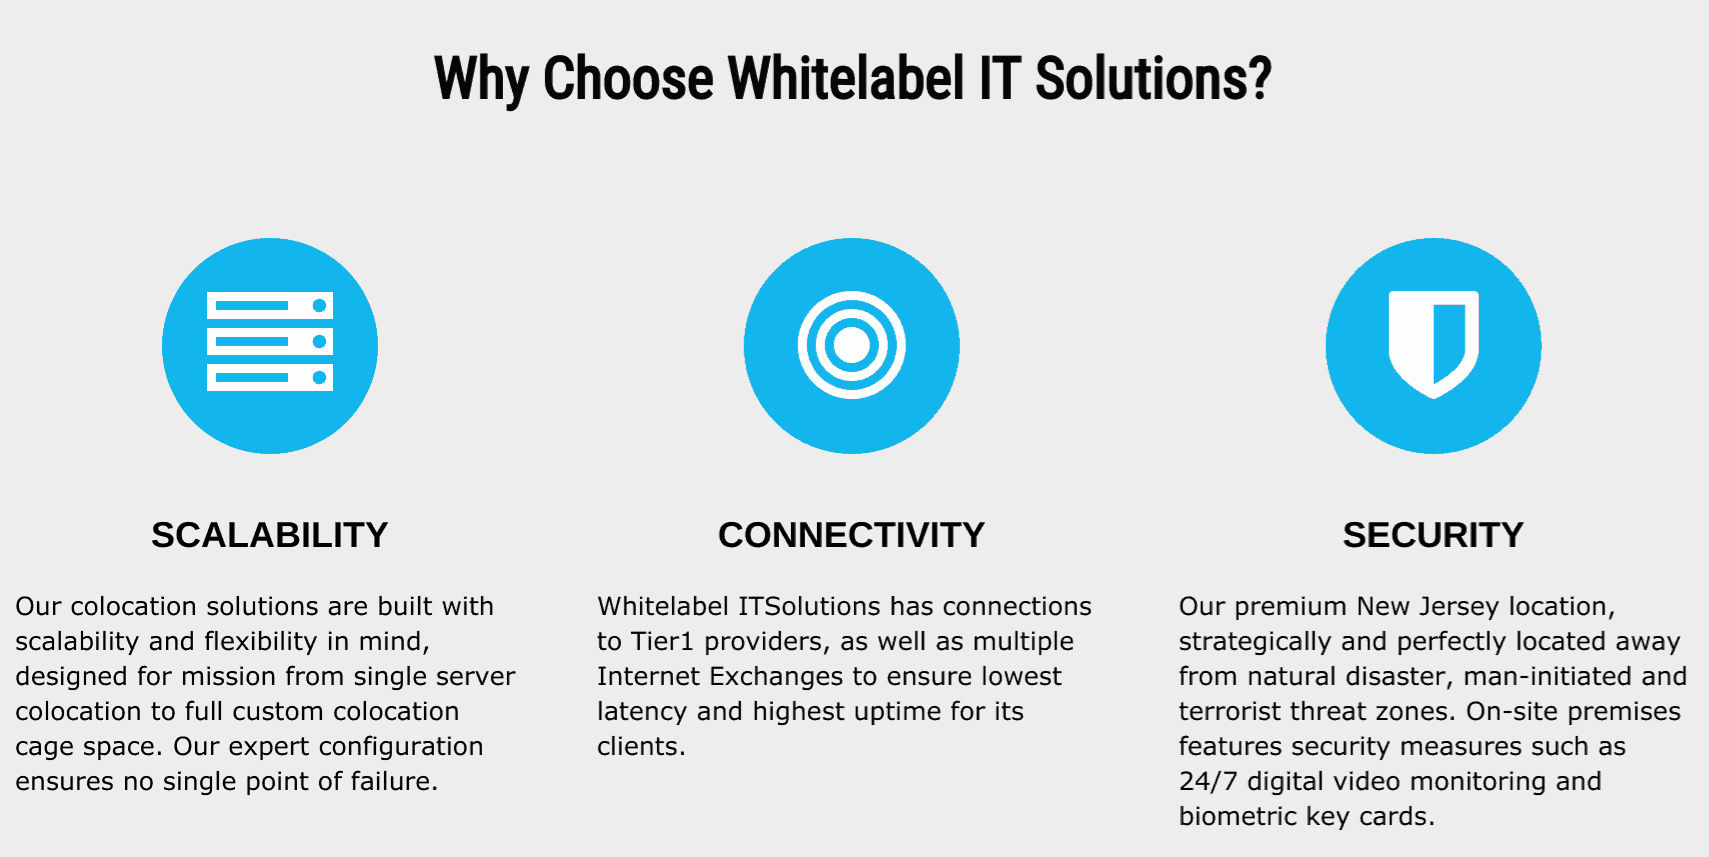 whitelabel-it-solutions-logo